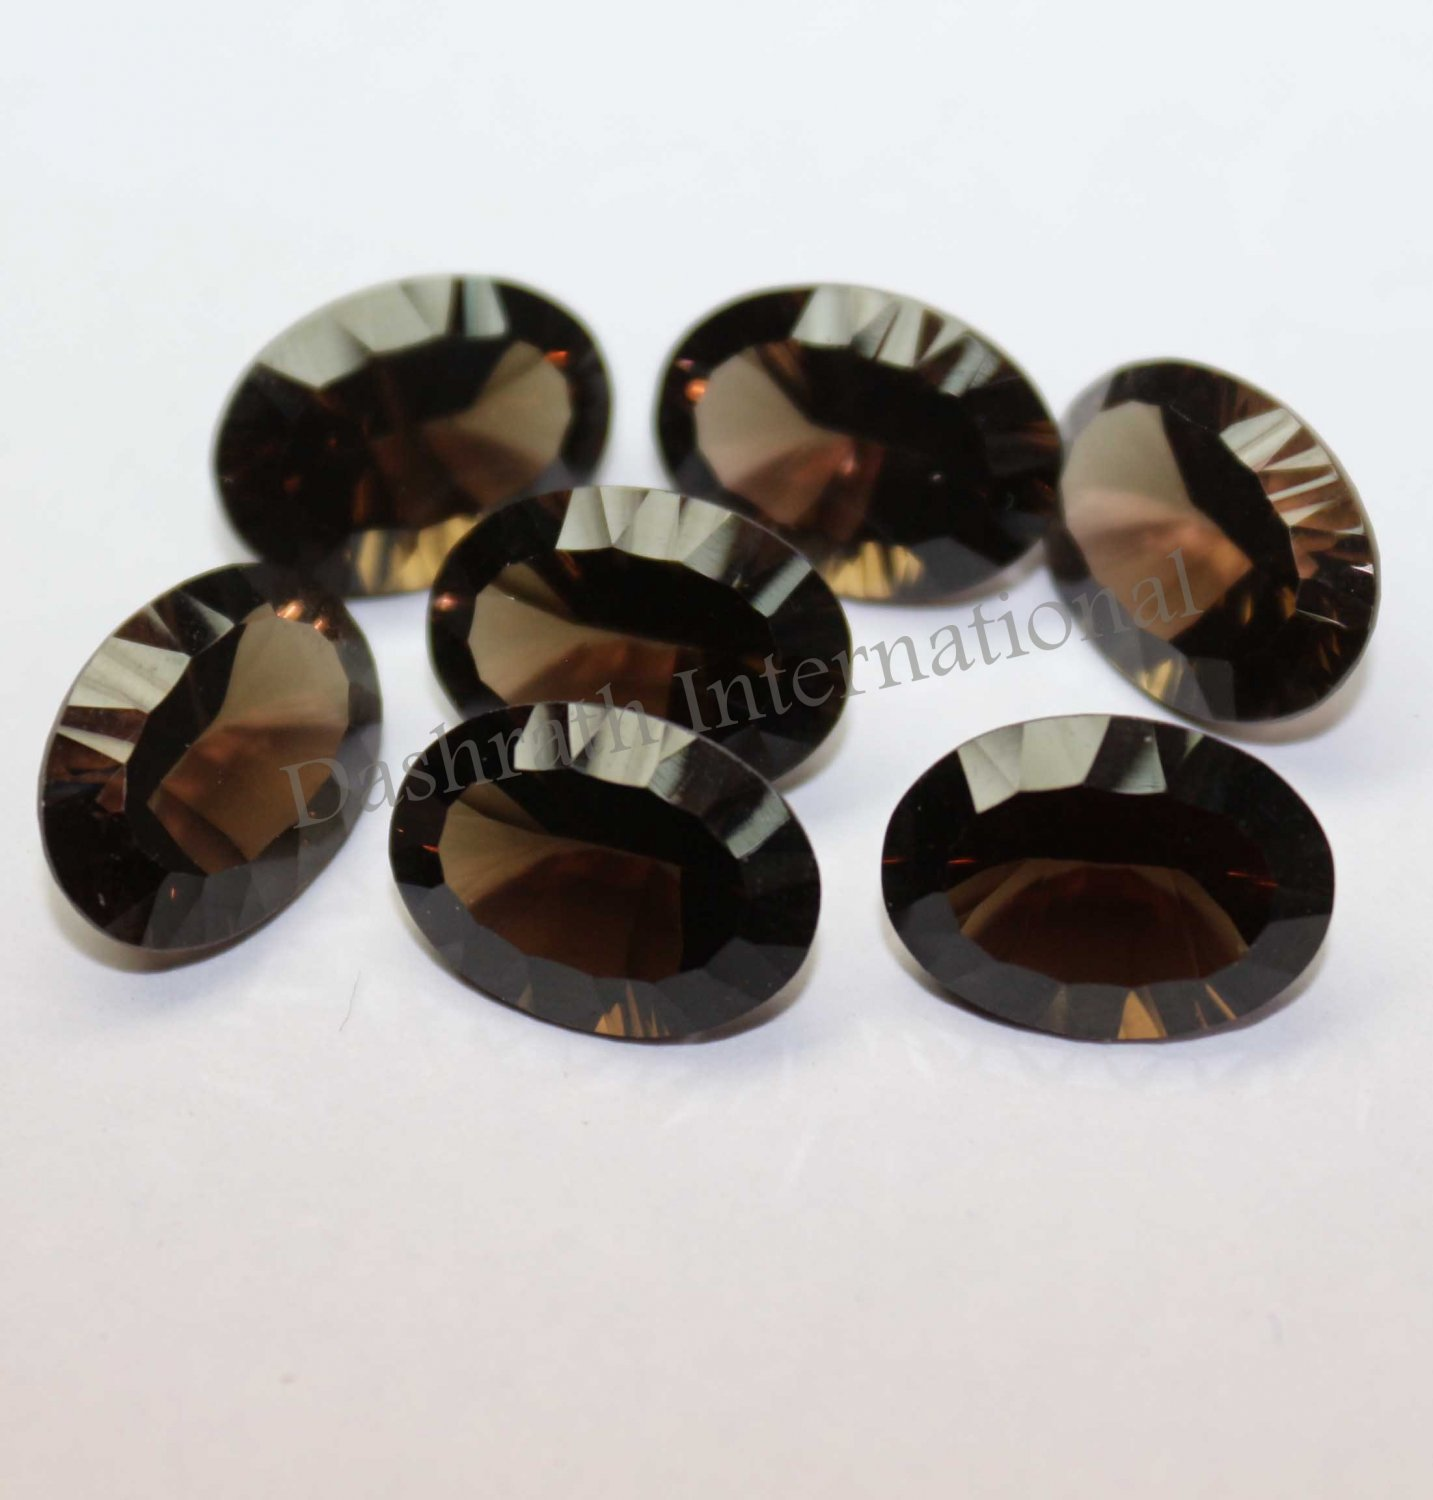 9x11mm Natural Smoky Quartz Concave Cut  Oval 1 Piece  (SI) Top Quality  Loose Gemstone